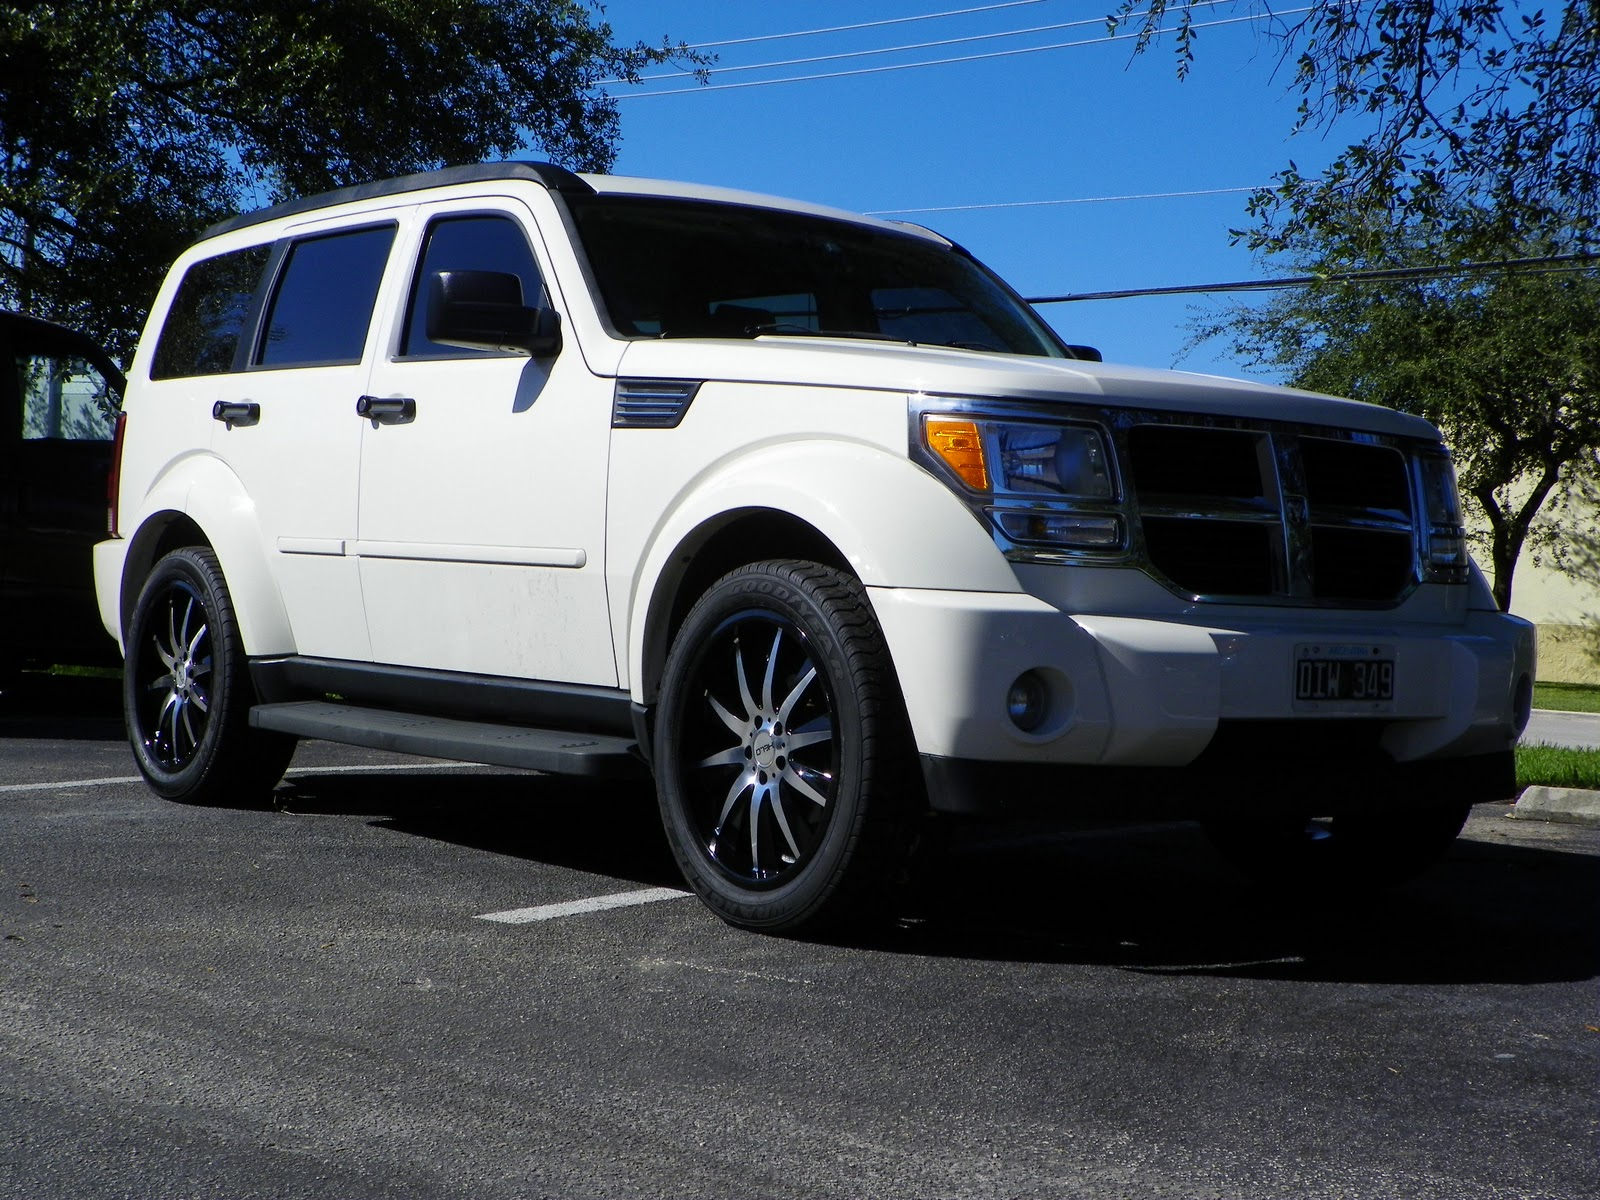 gwt motoring wheels tires more 2007 dodge nitro. Black Bedroom Furniture Sets. Home Design Ideas